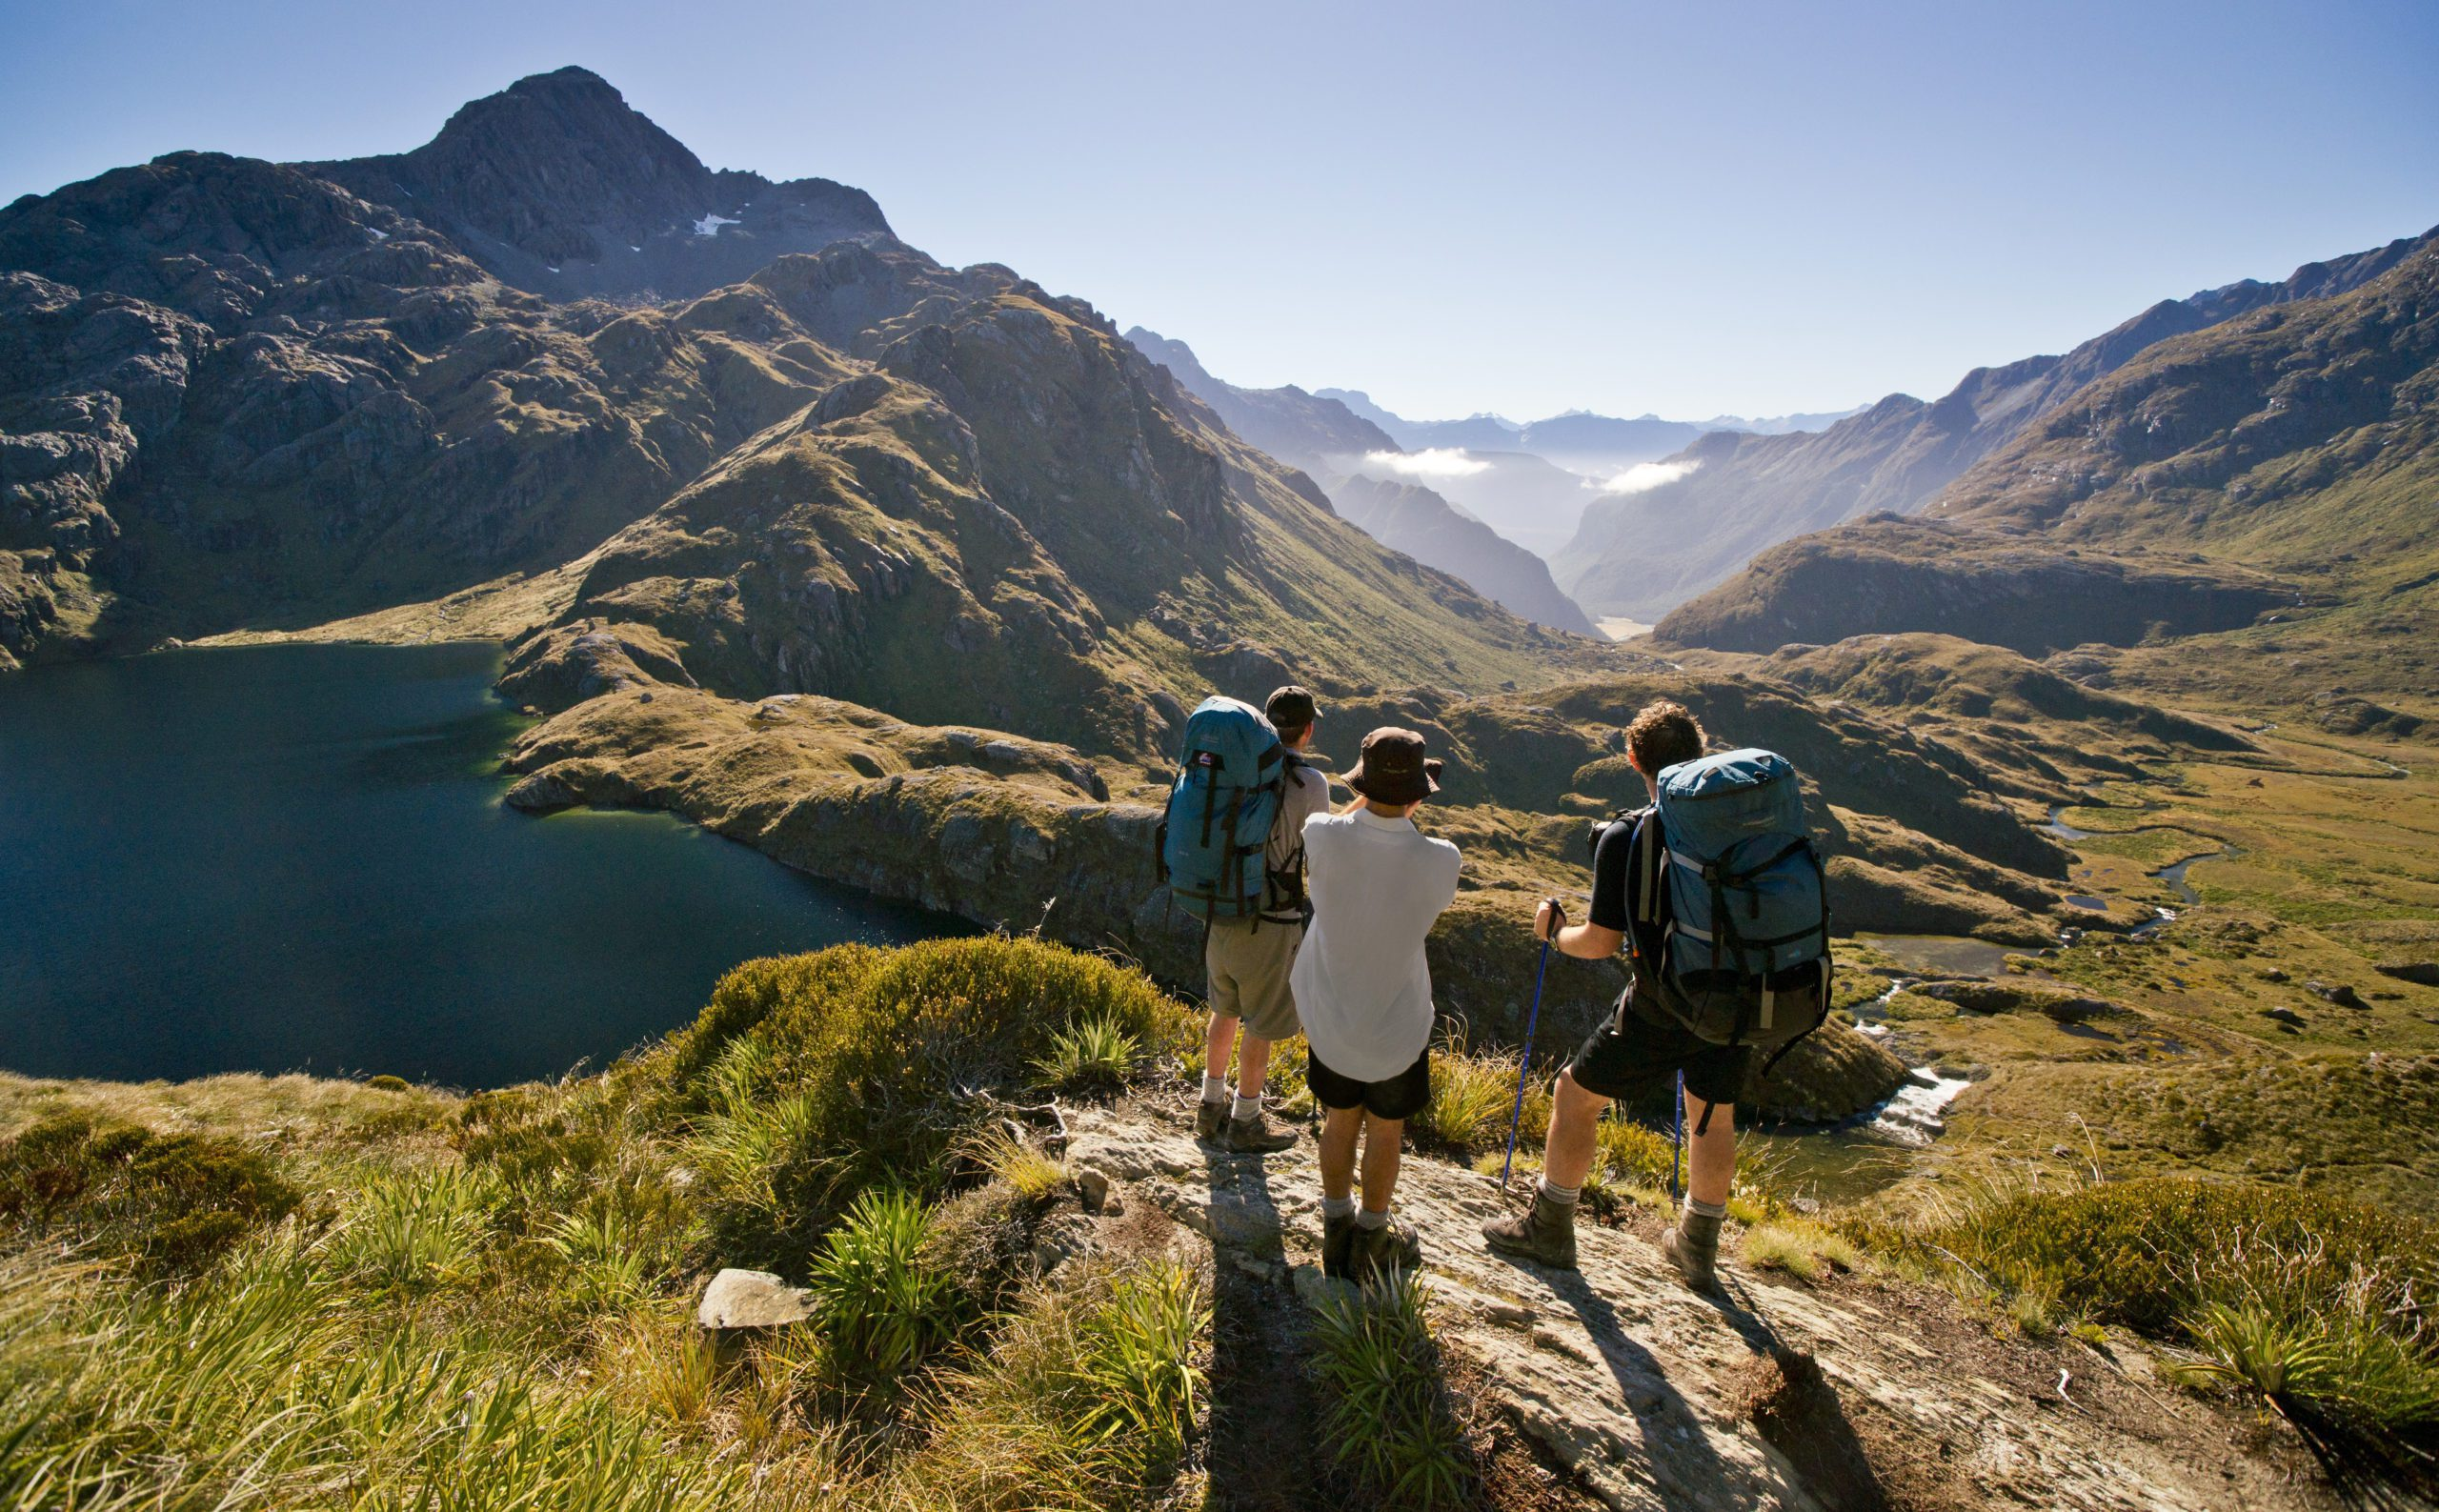 Hikers stop to enjoy the mountain views on the Routeburn Track.